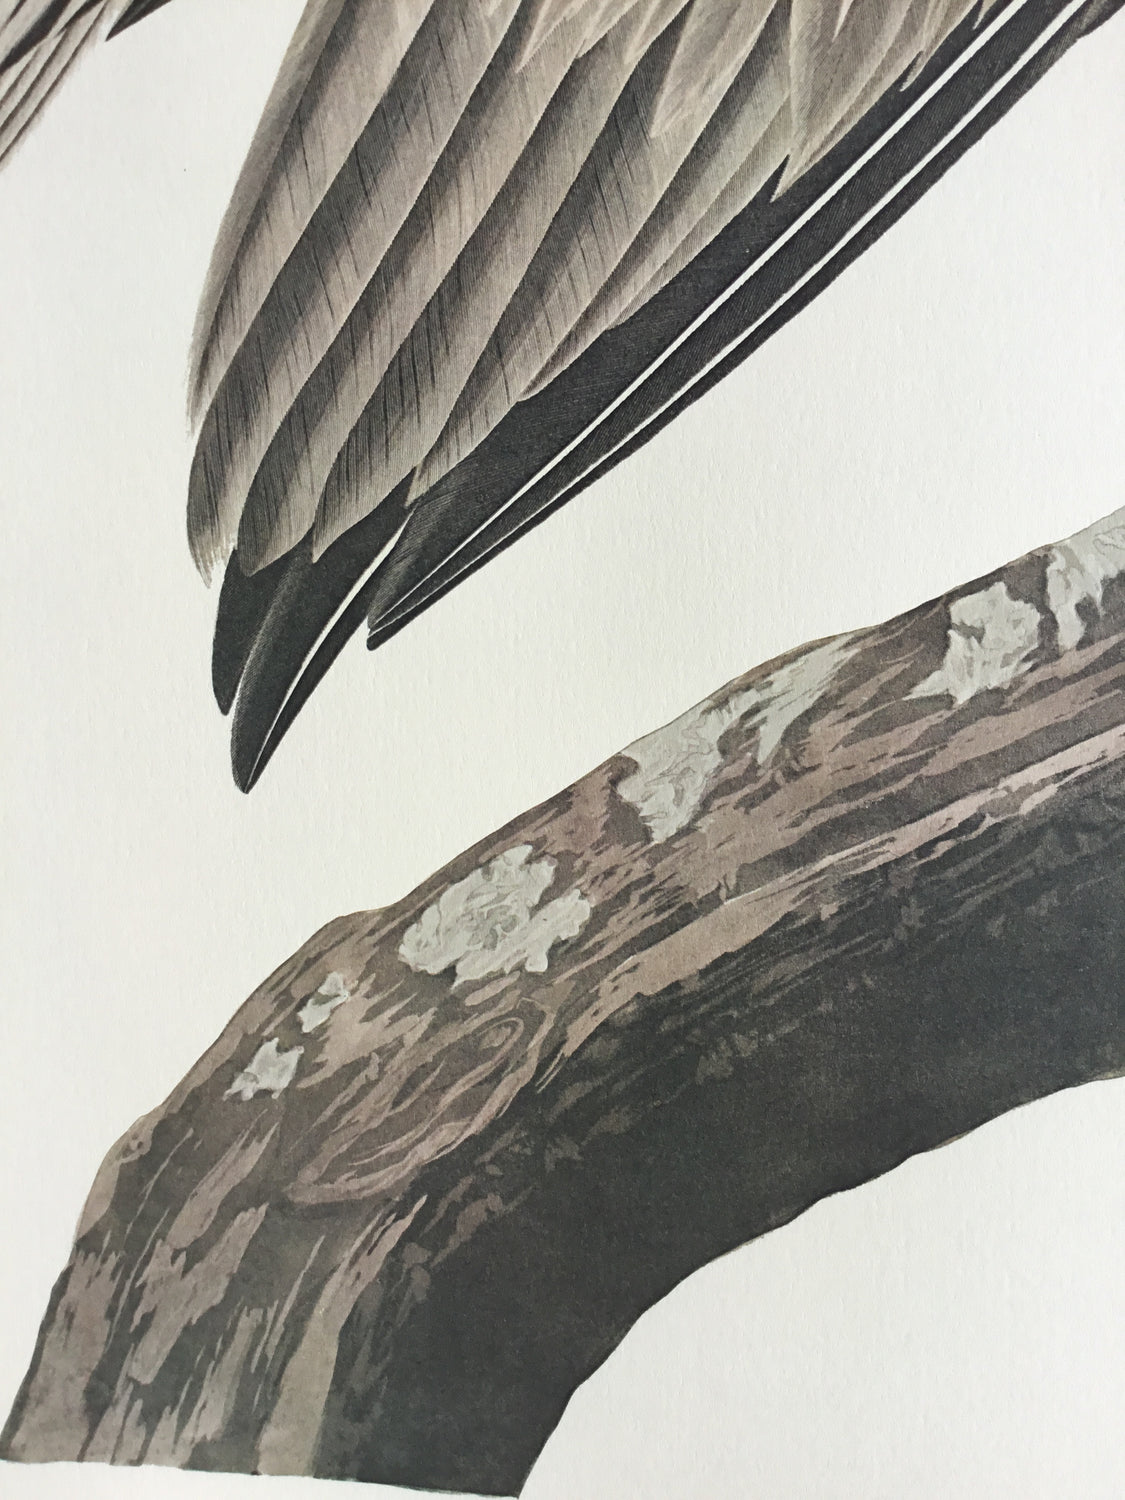 Brown Pelican Audubon Print. Princeton Audubon.The world's only direct camera image of Audubons original. 26 1/4 x 39 1/4. Positioned by Audubon in a Mangrove tree. Florida Keys, 1832.